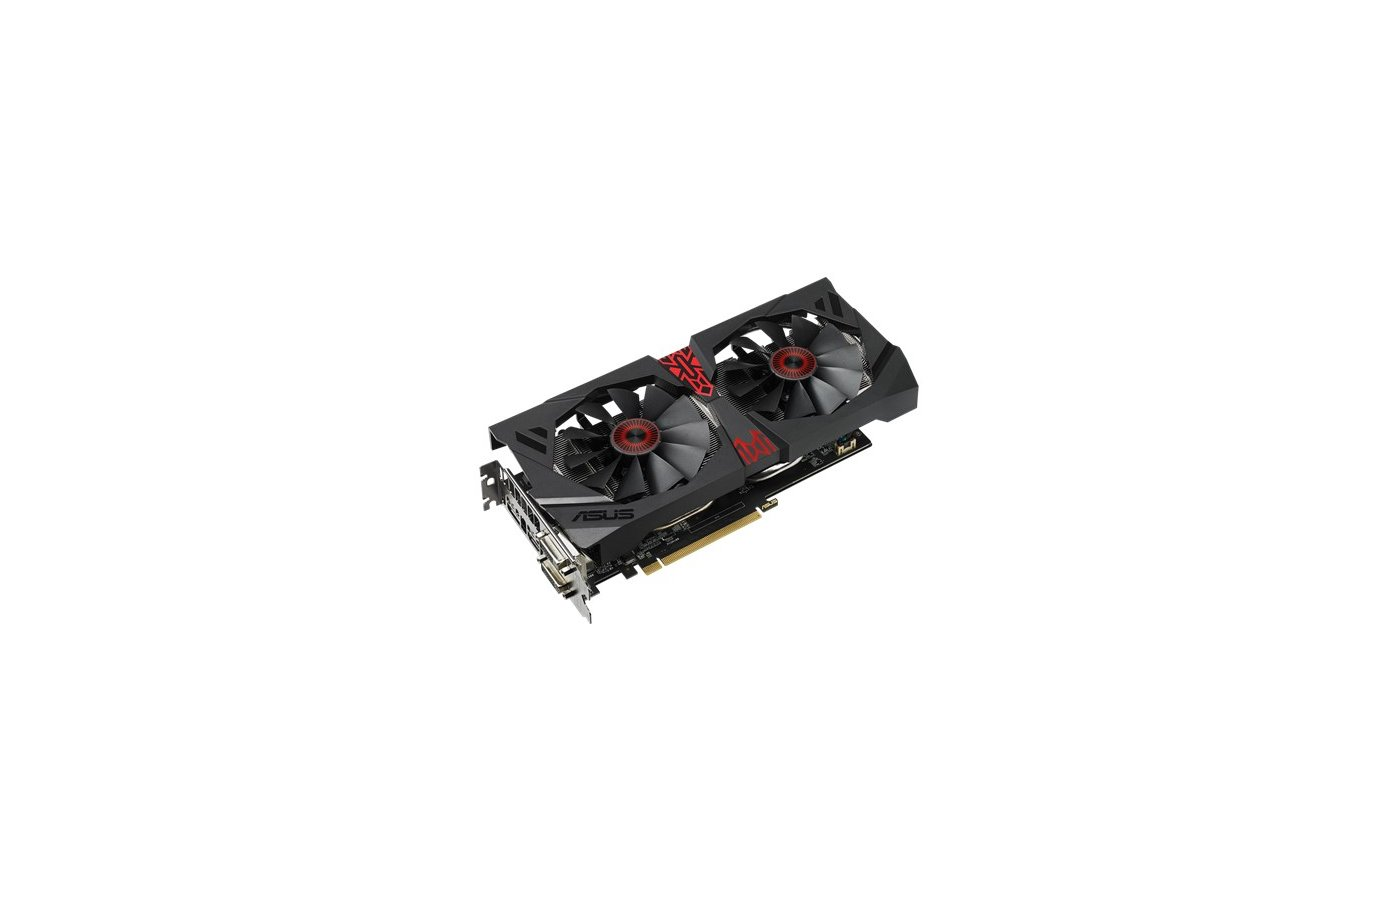 Видеокарта Asus Strix R9380-DC2-2GD5-GAMING RTL